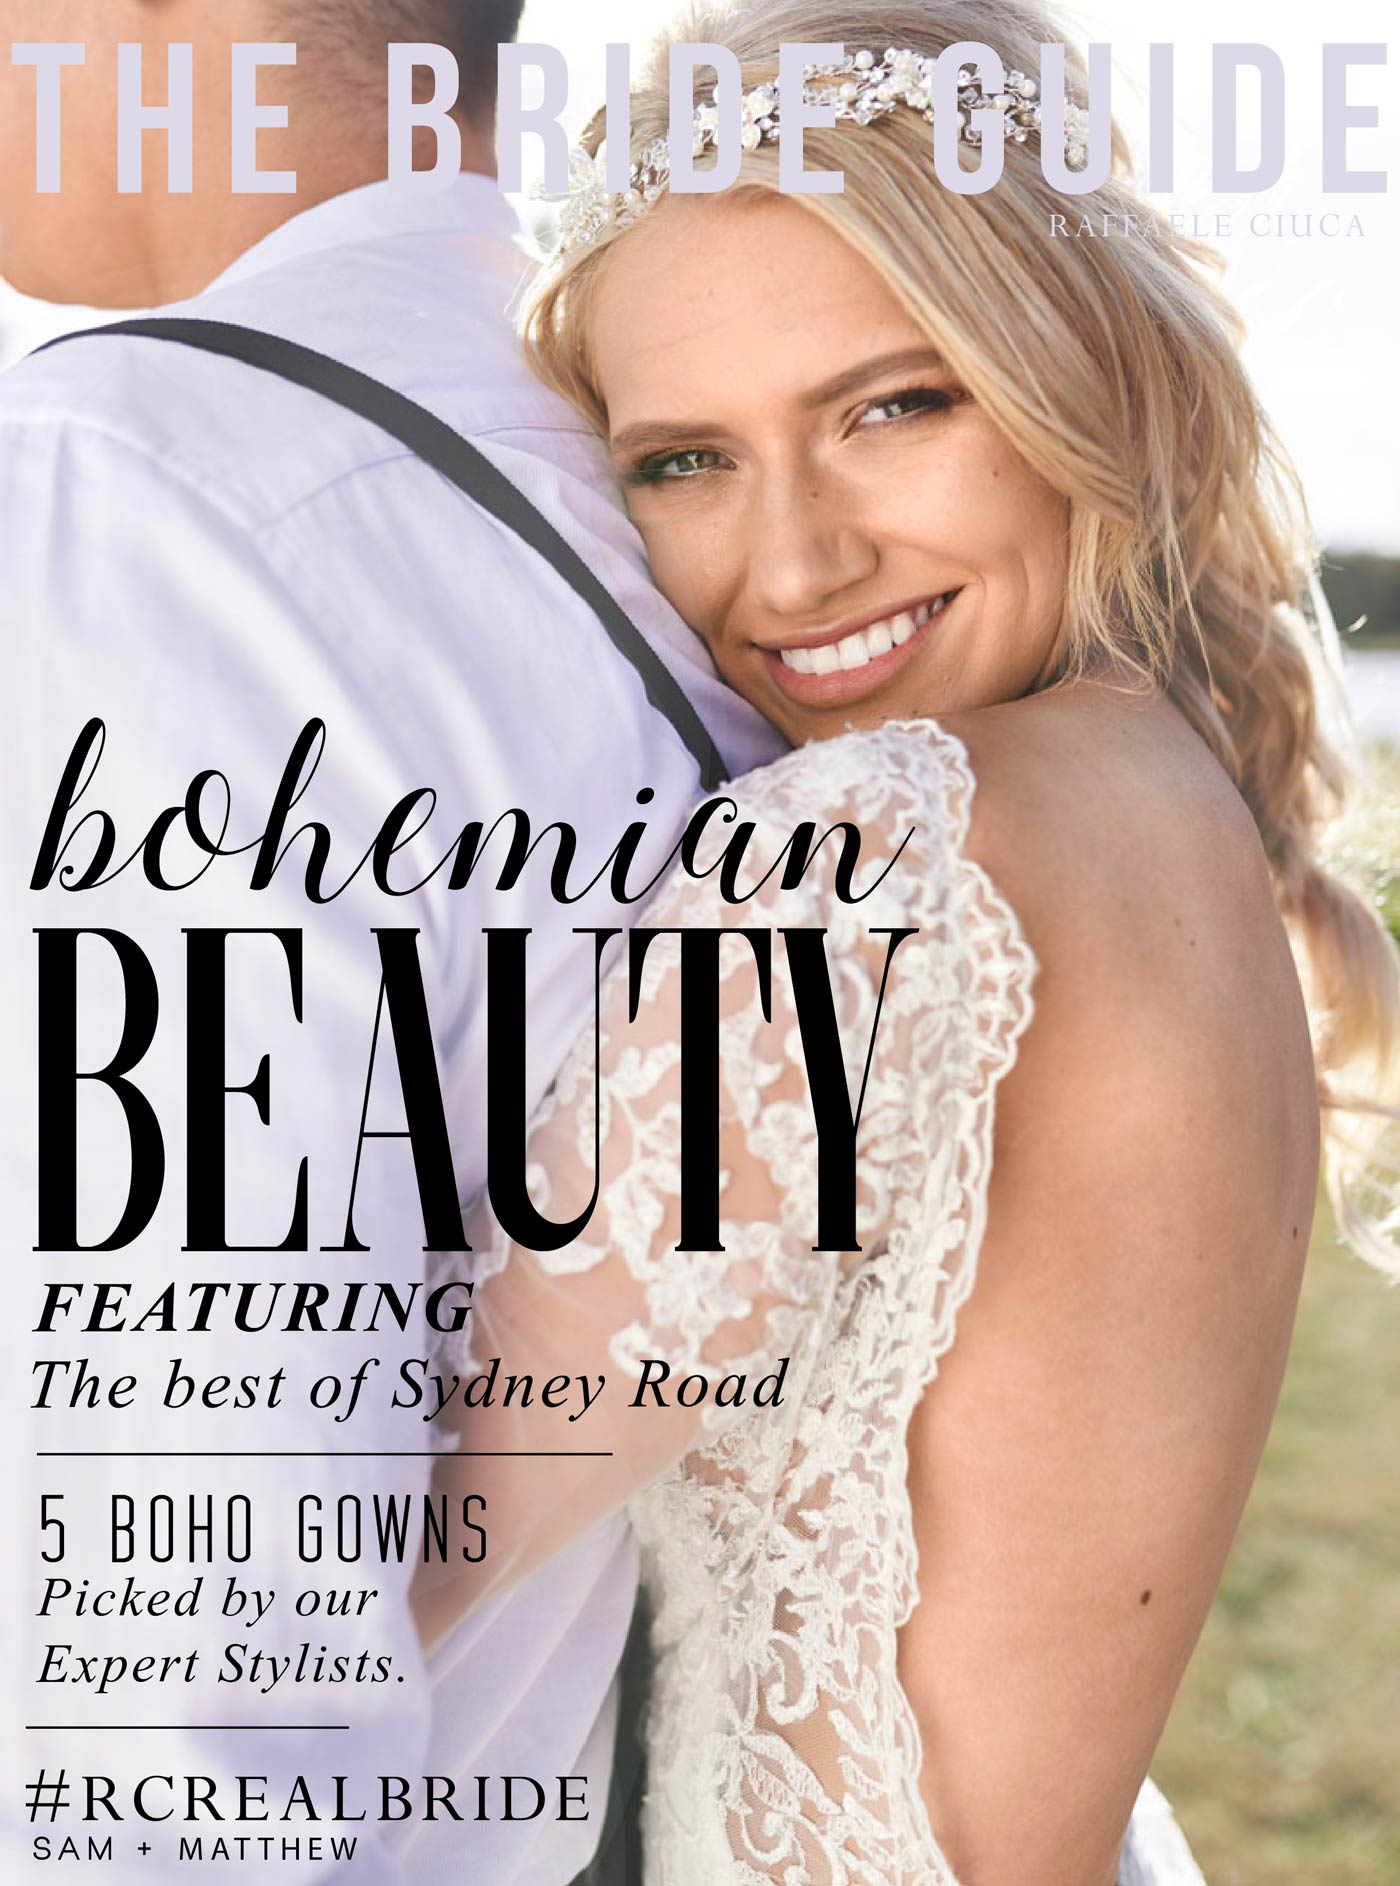 Boho wedding dresses available for sale in Melbourne